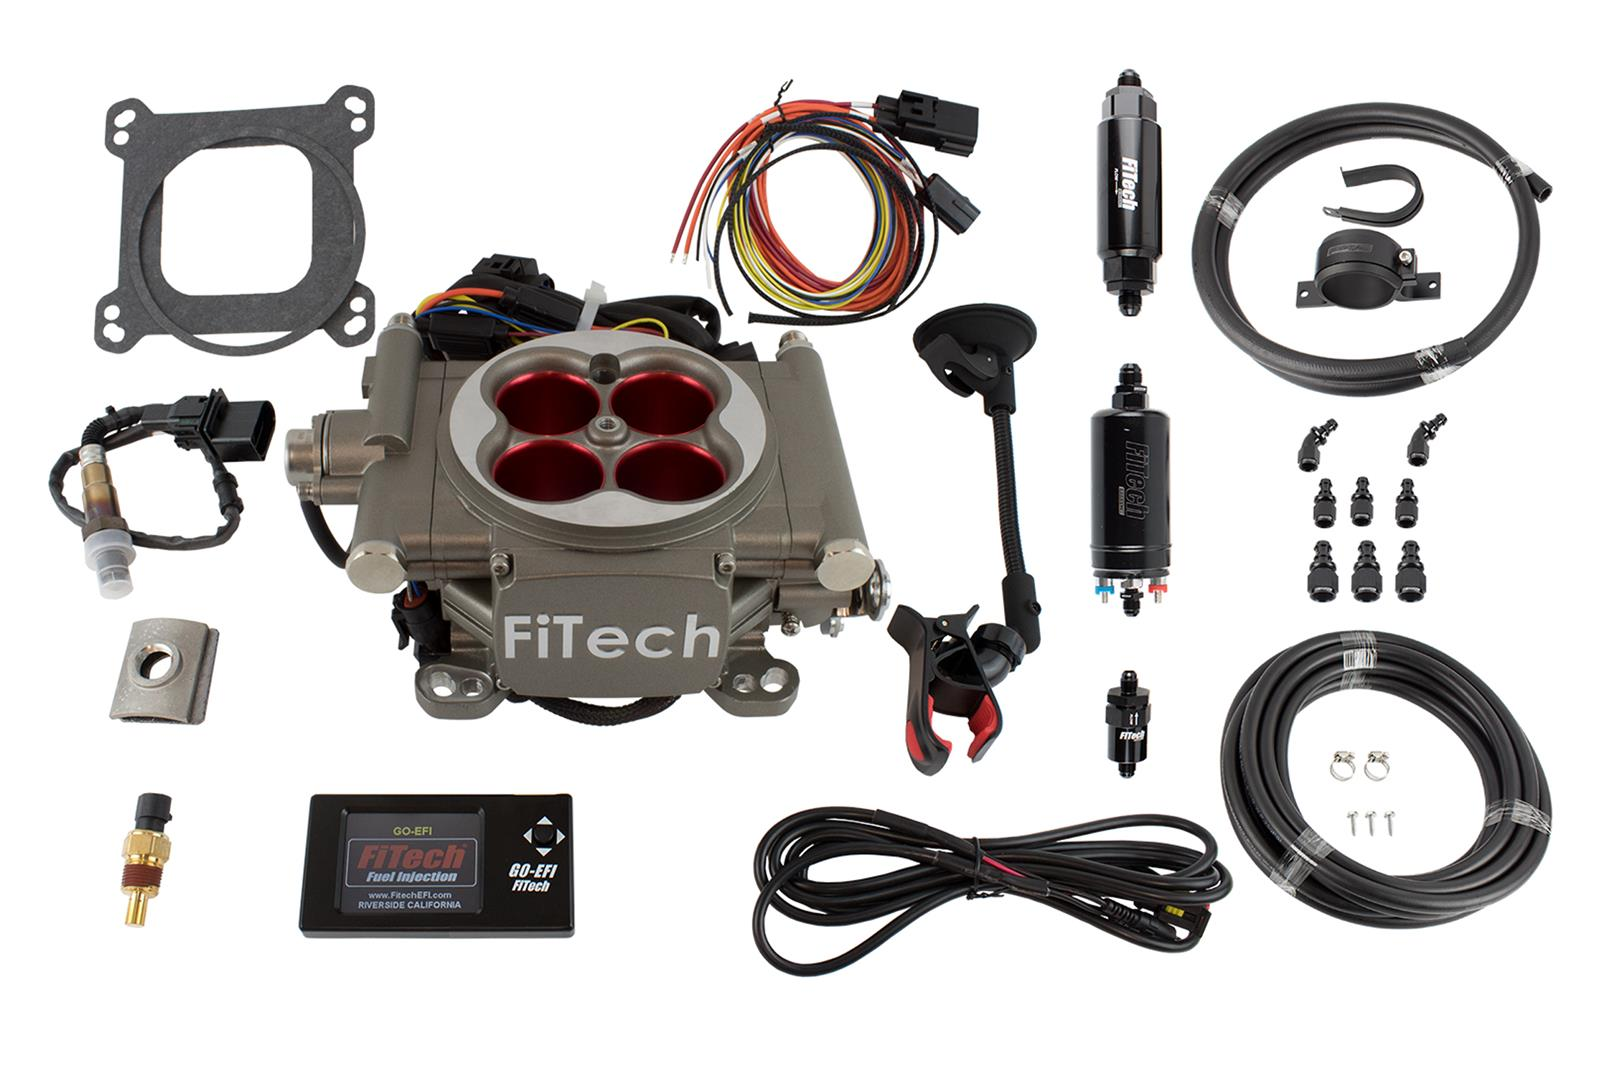 FiTech Go Street EFI 400 HP Self-Tuning Fuel Injection Systems 31003